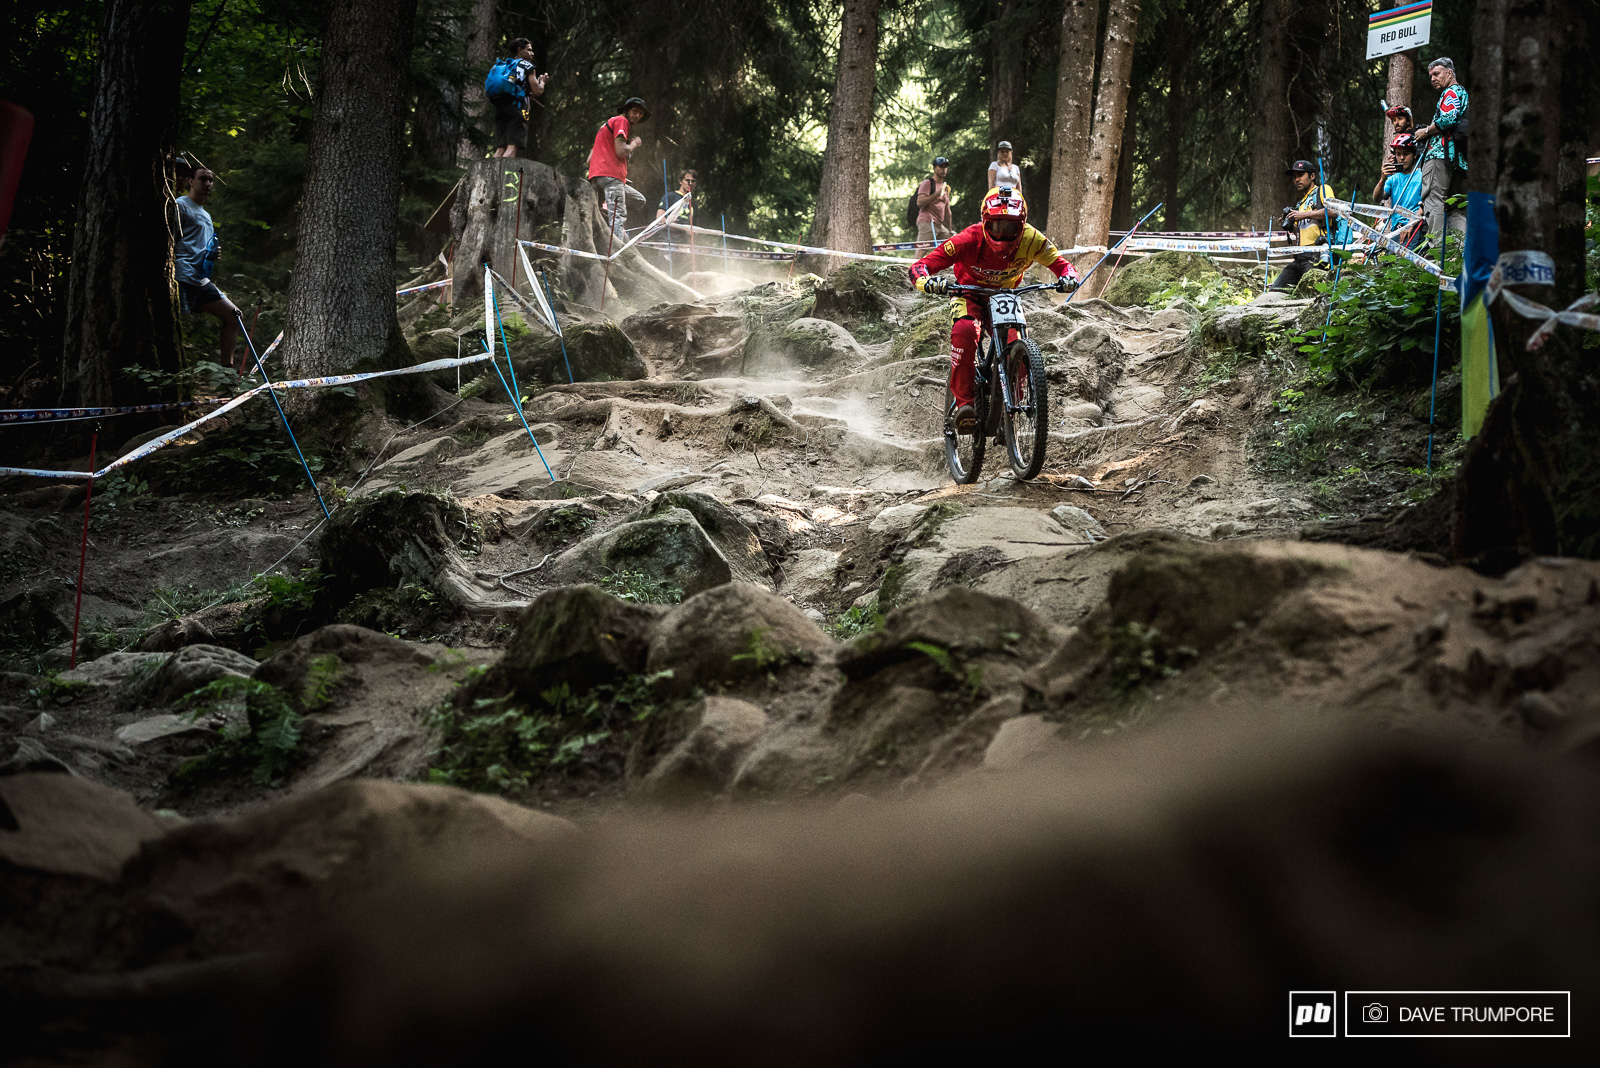 Alex Marin takes the inside line down the steep rock garden.